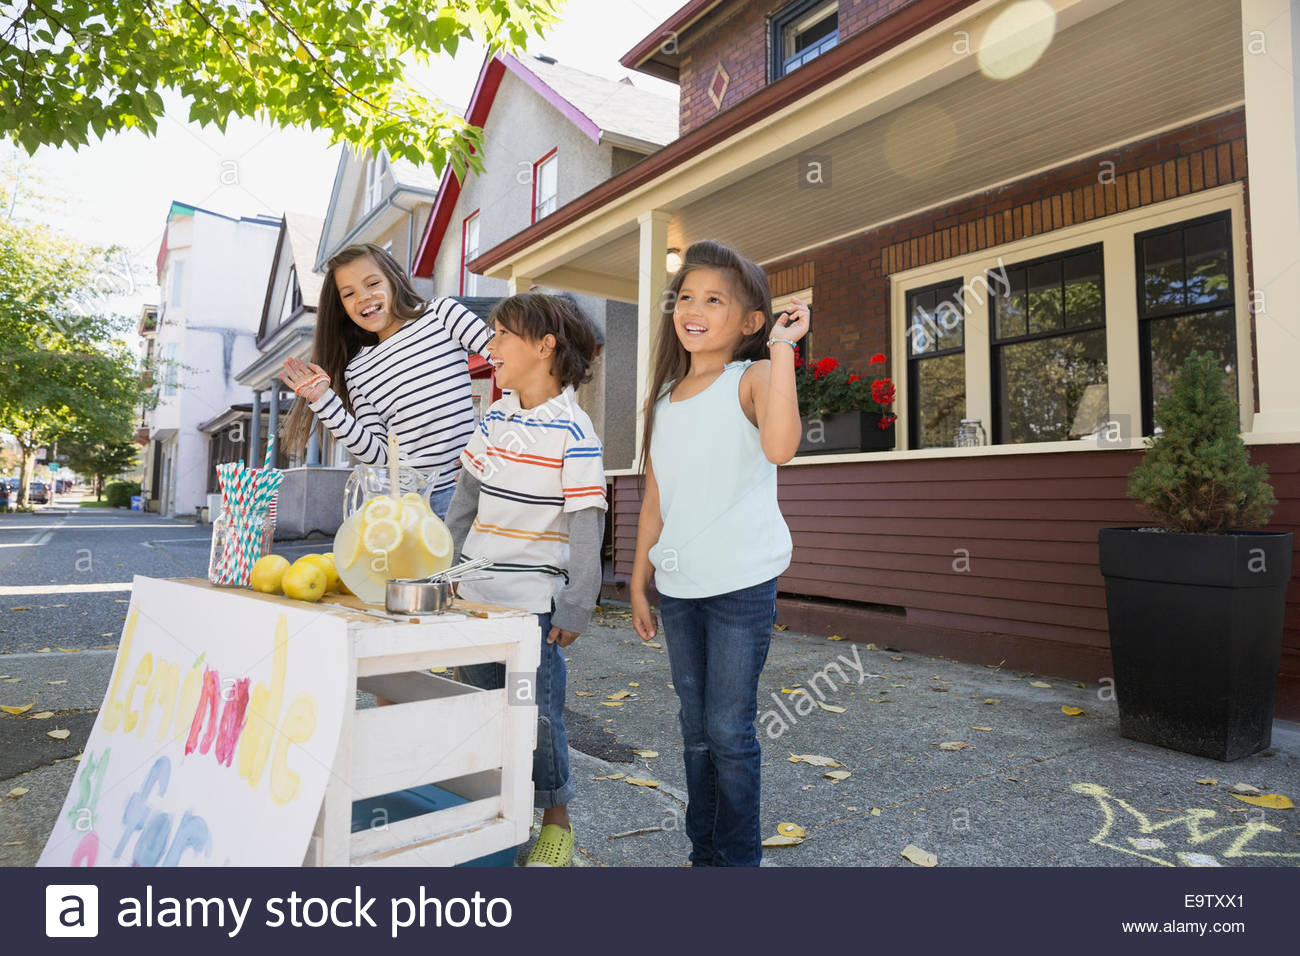 Brother and sisters at lemonade stand outside house - Stock Image